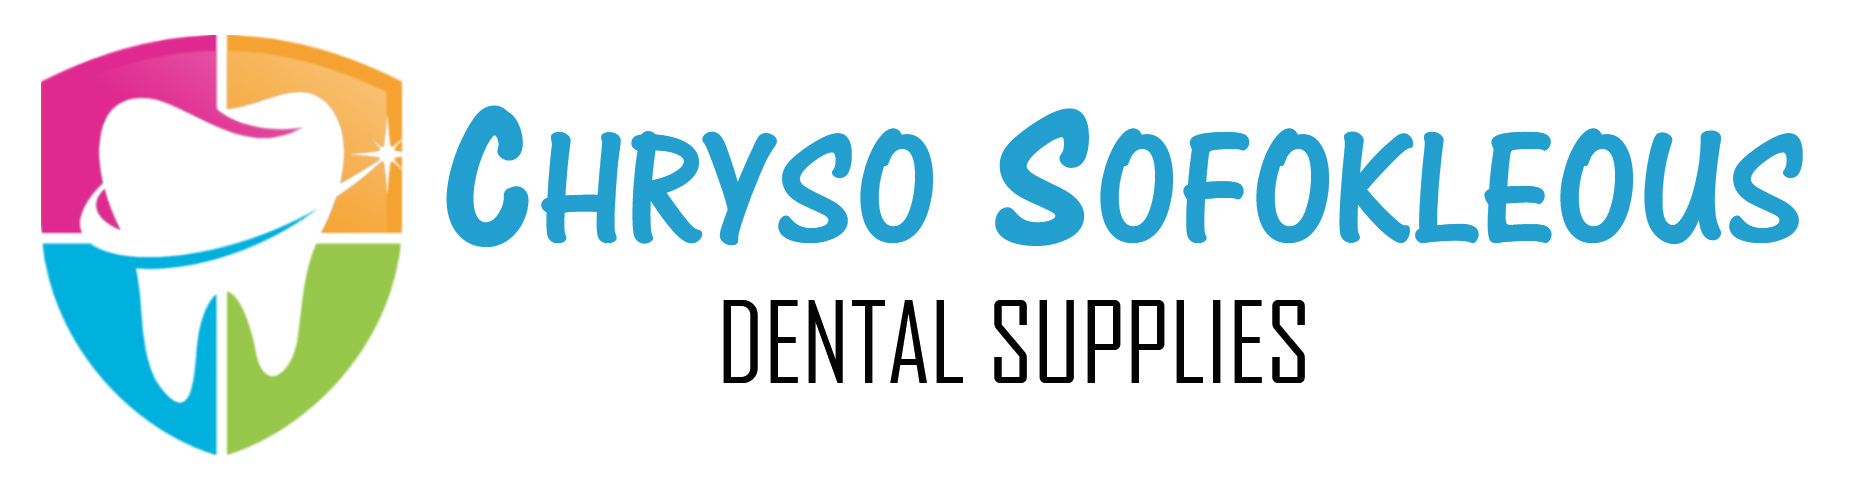 Chryso's Dental